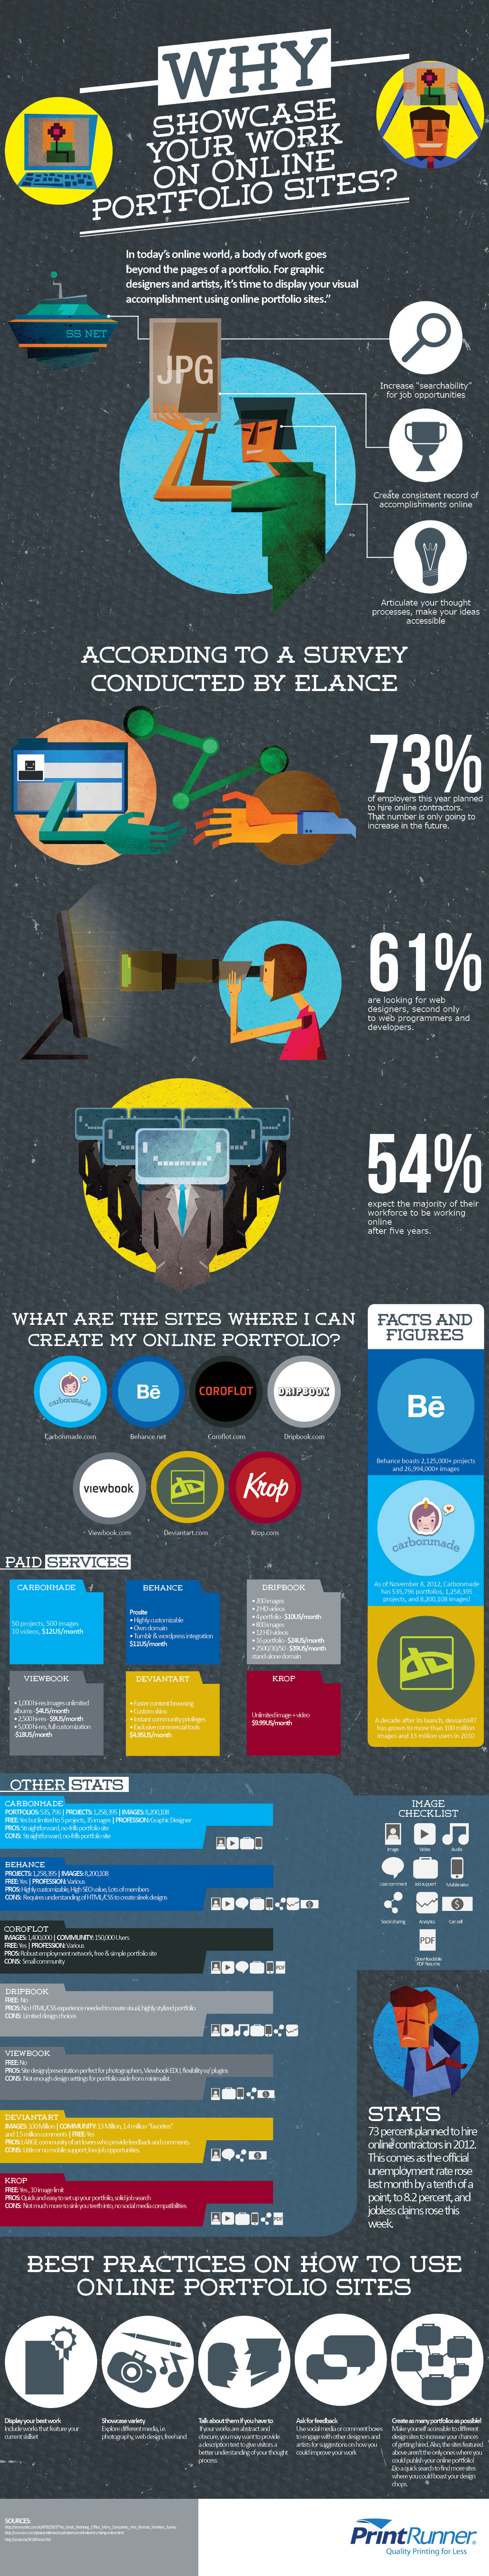 Why Showcase Your Works on Online Portfolio Sites?